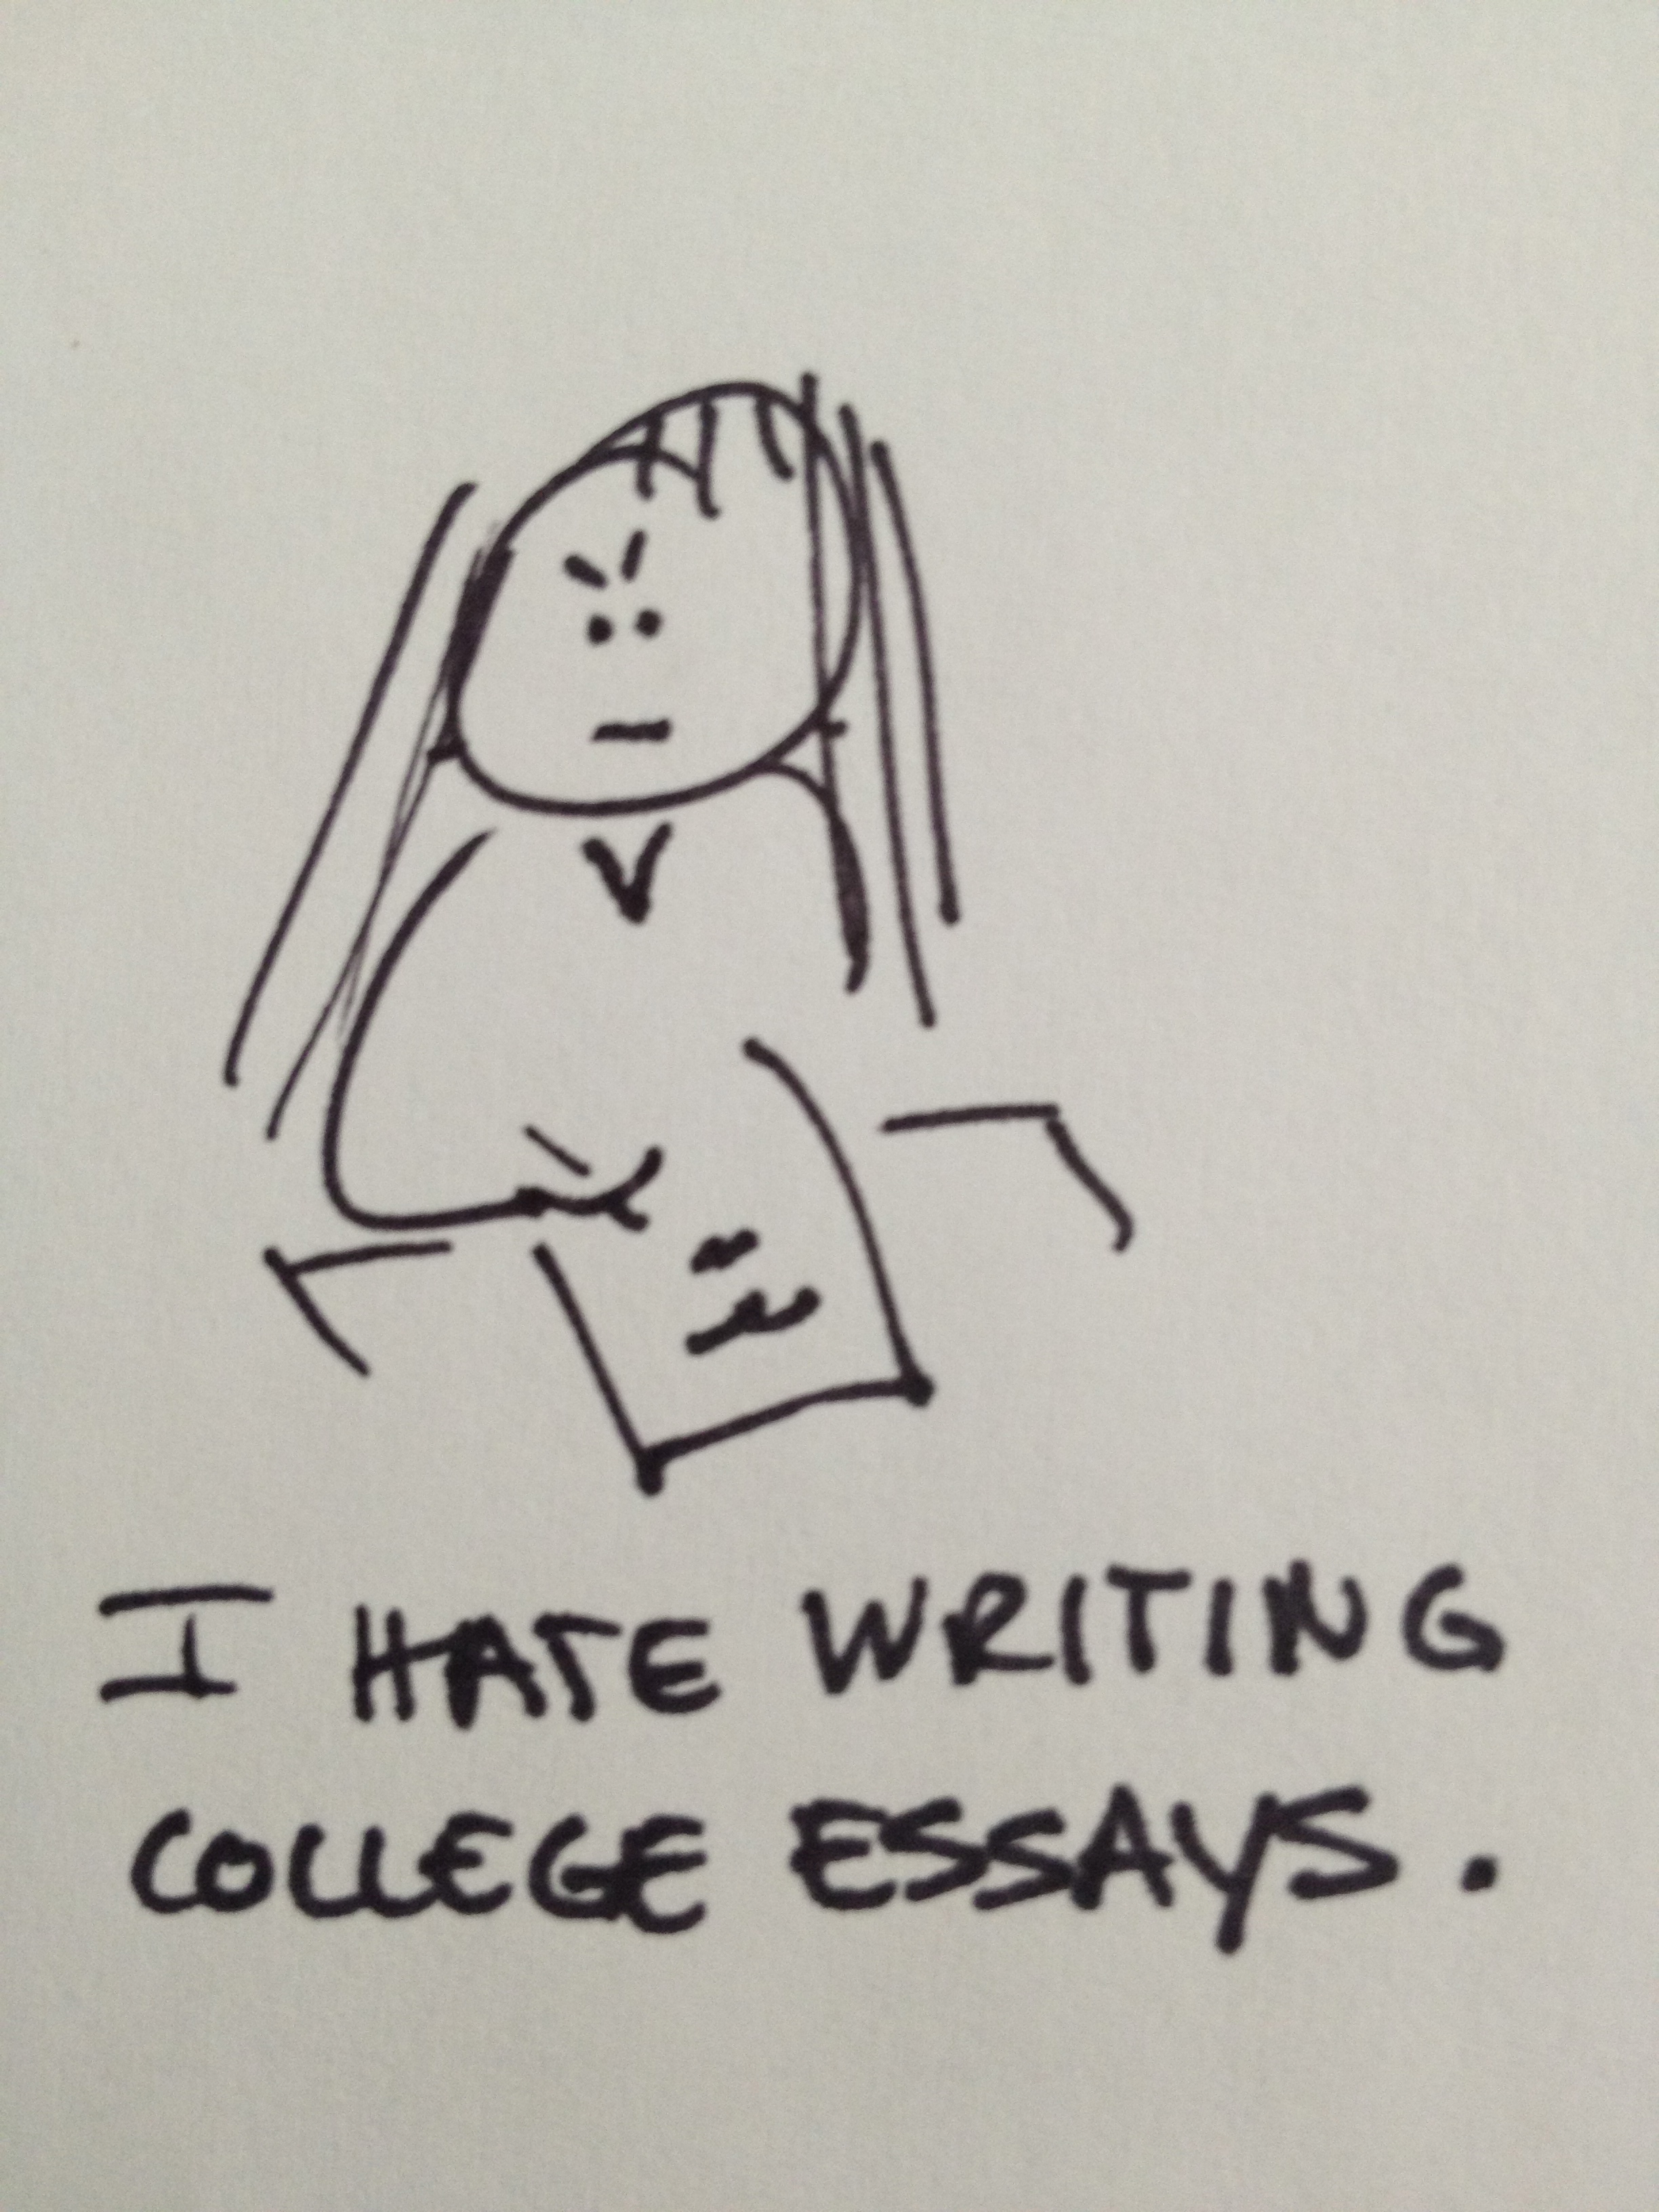 essays on why i want to go to your college